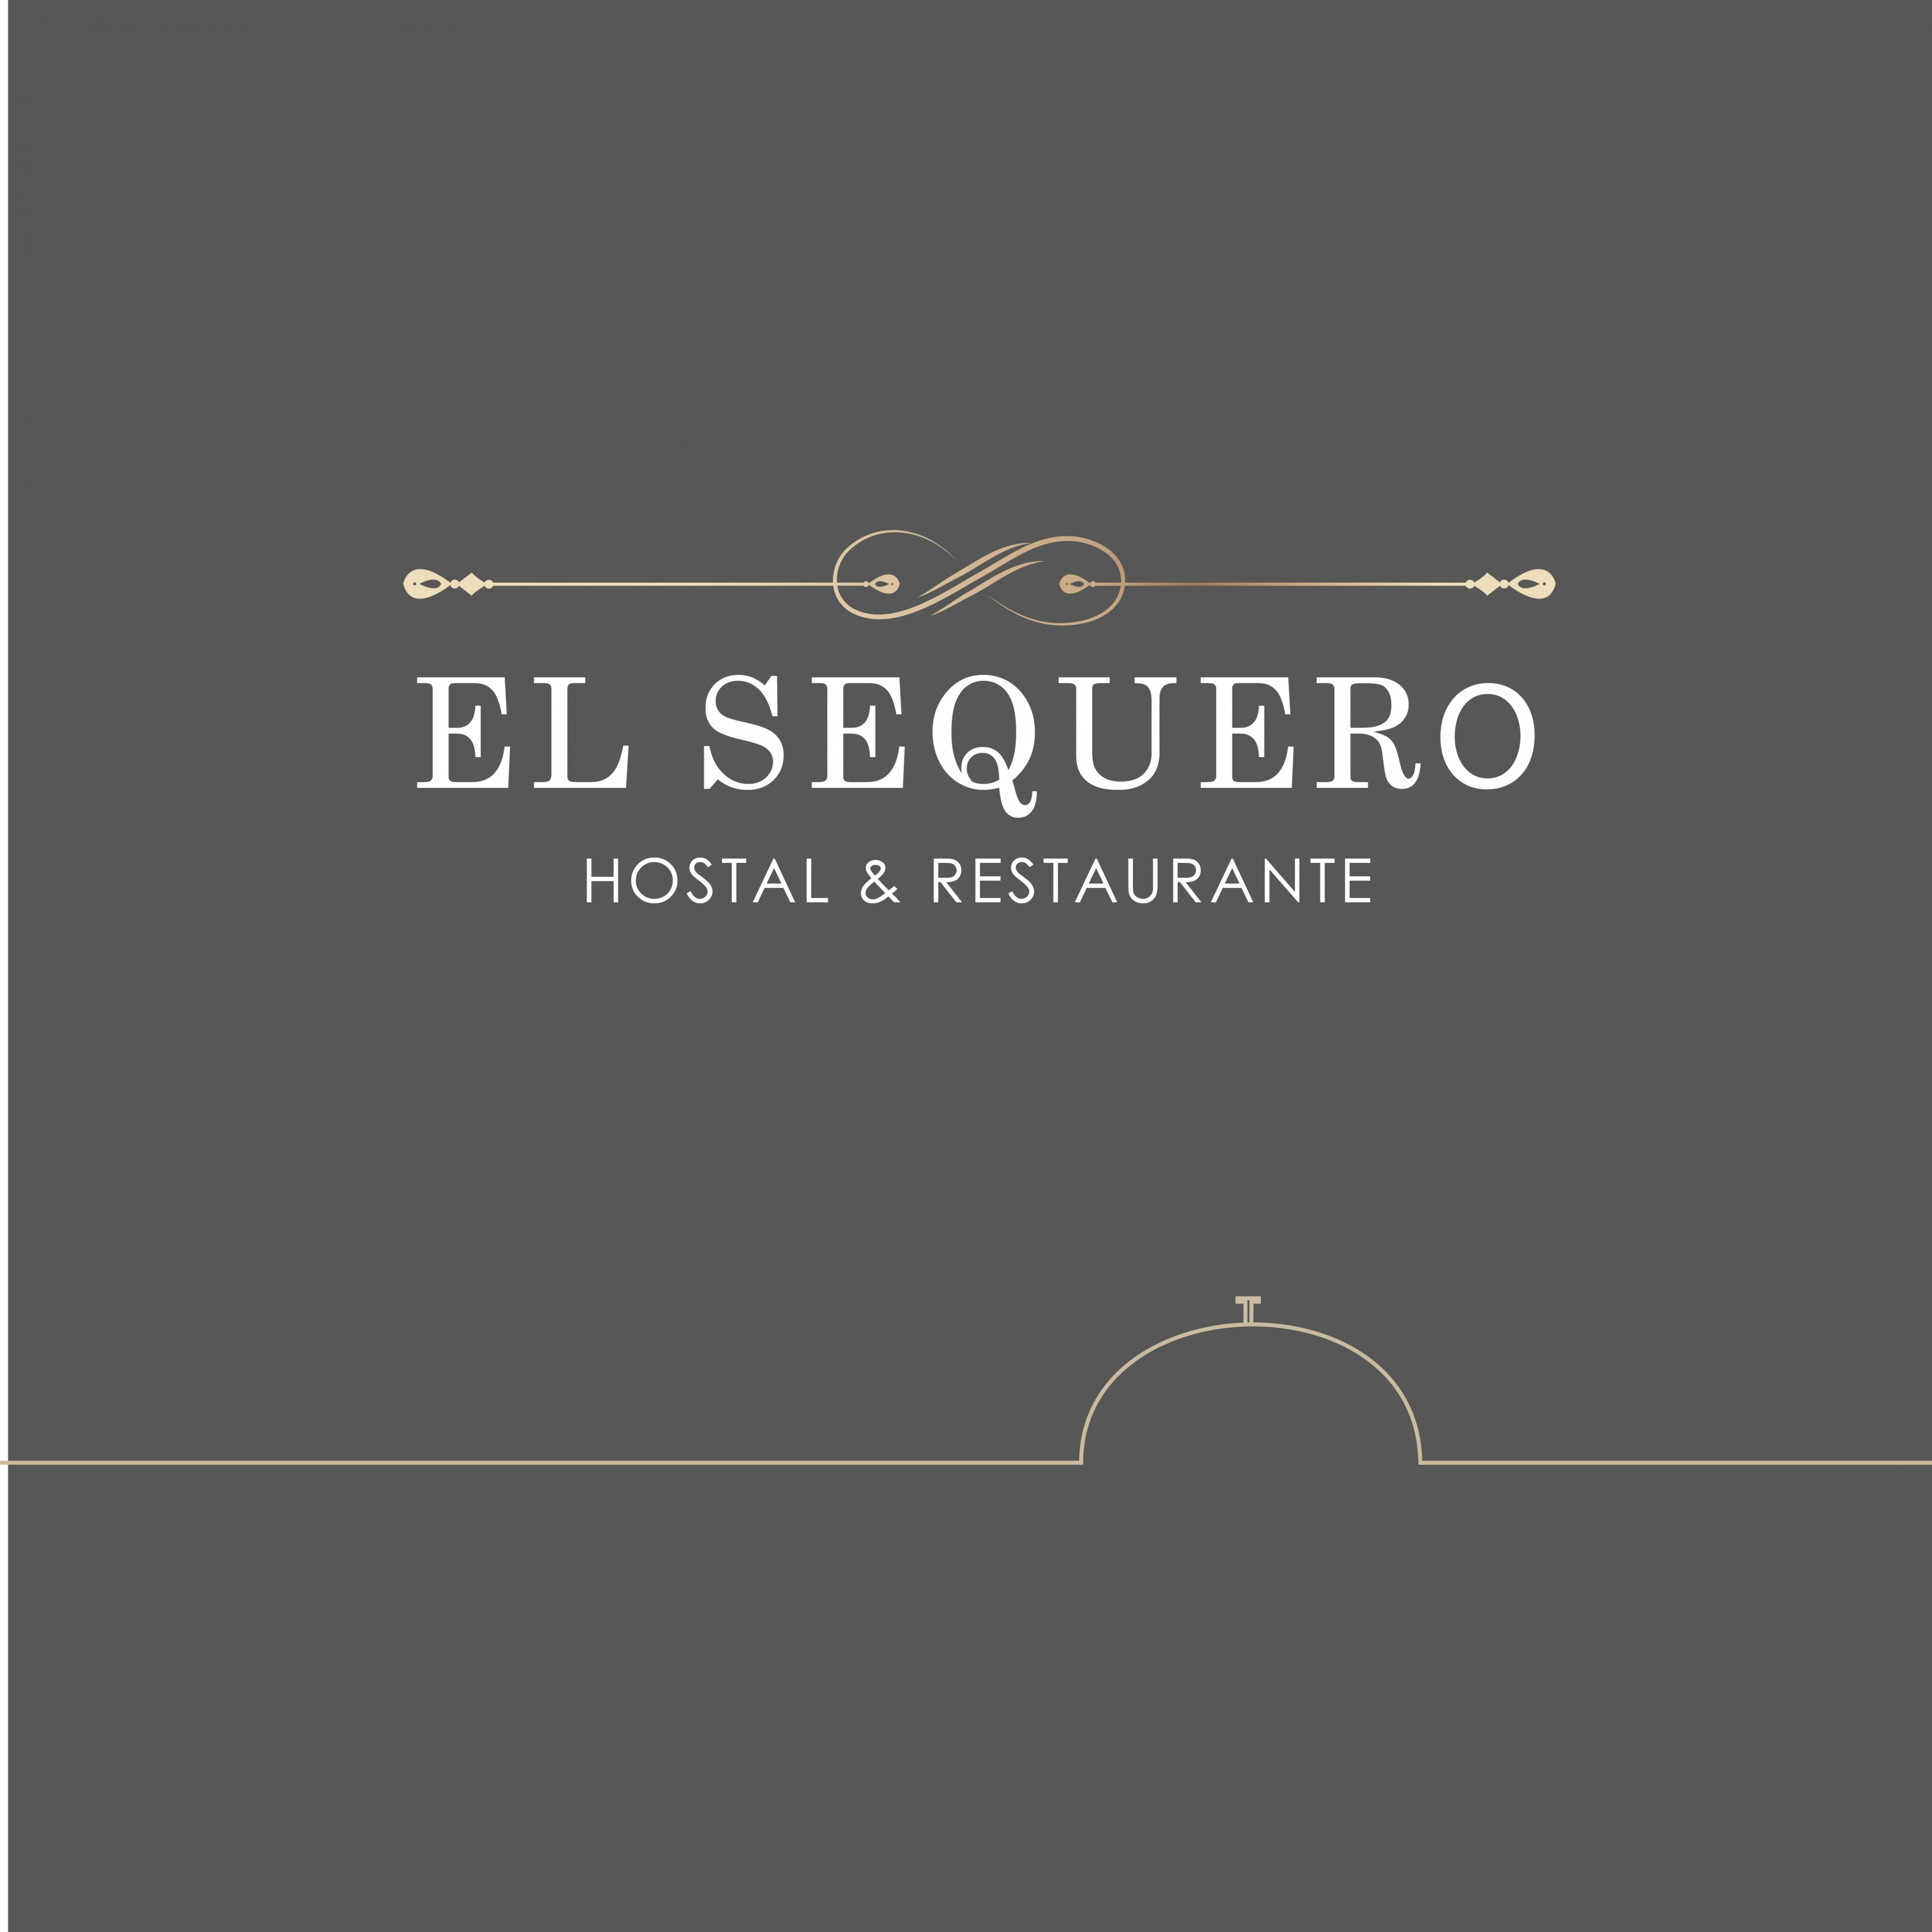 Hostal El Sequero